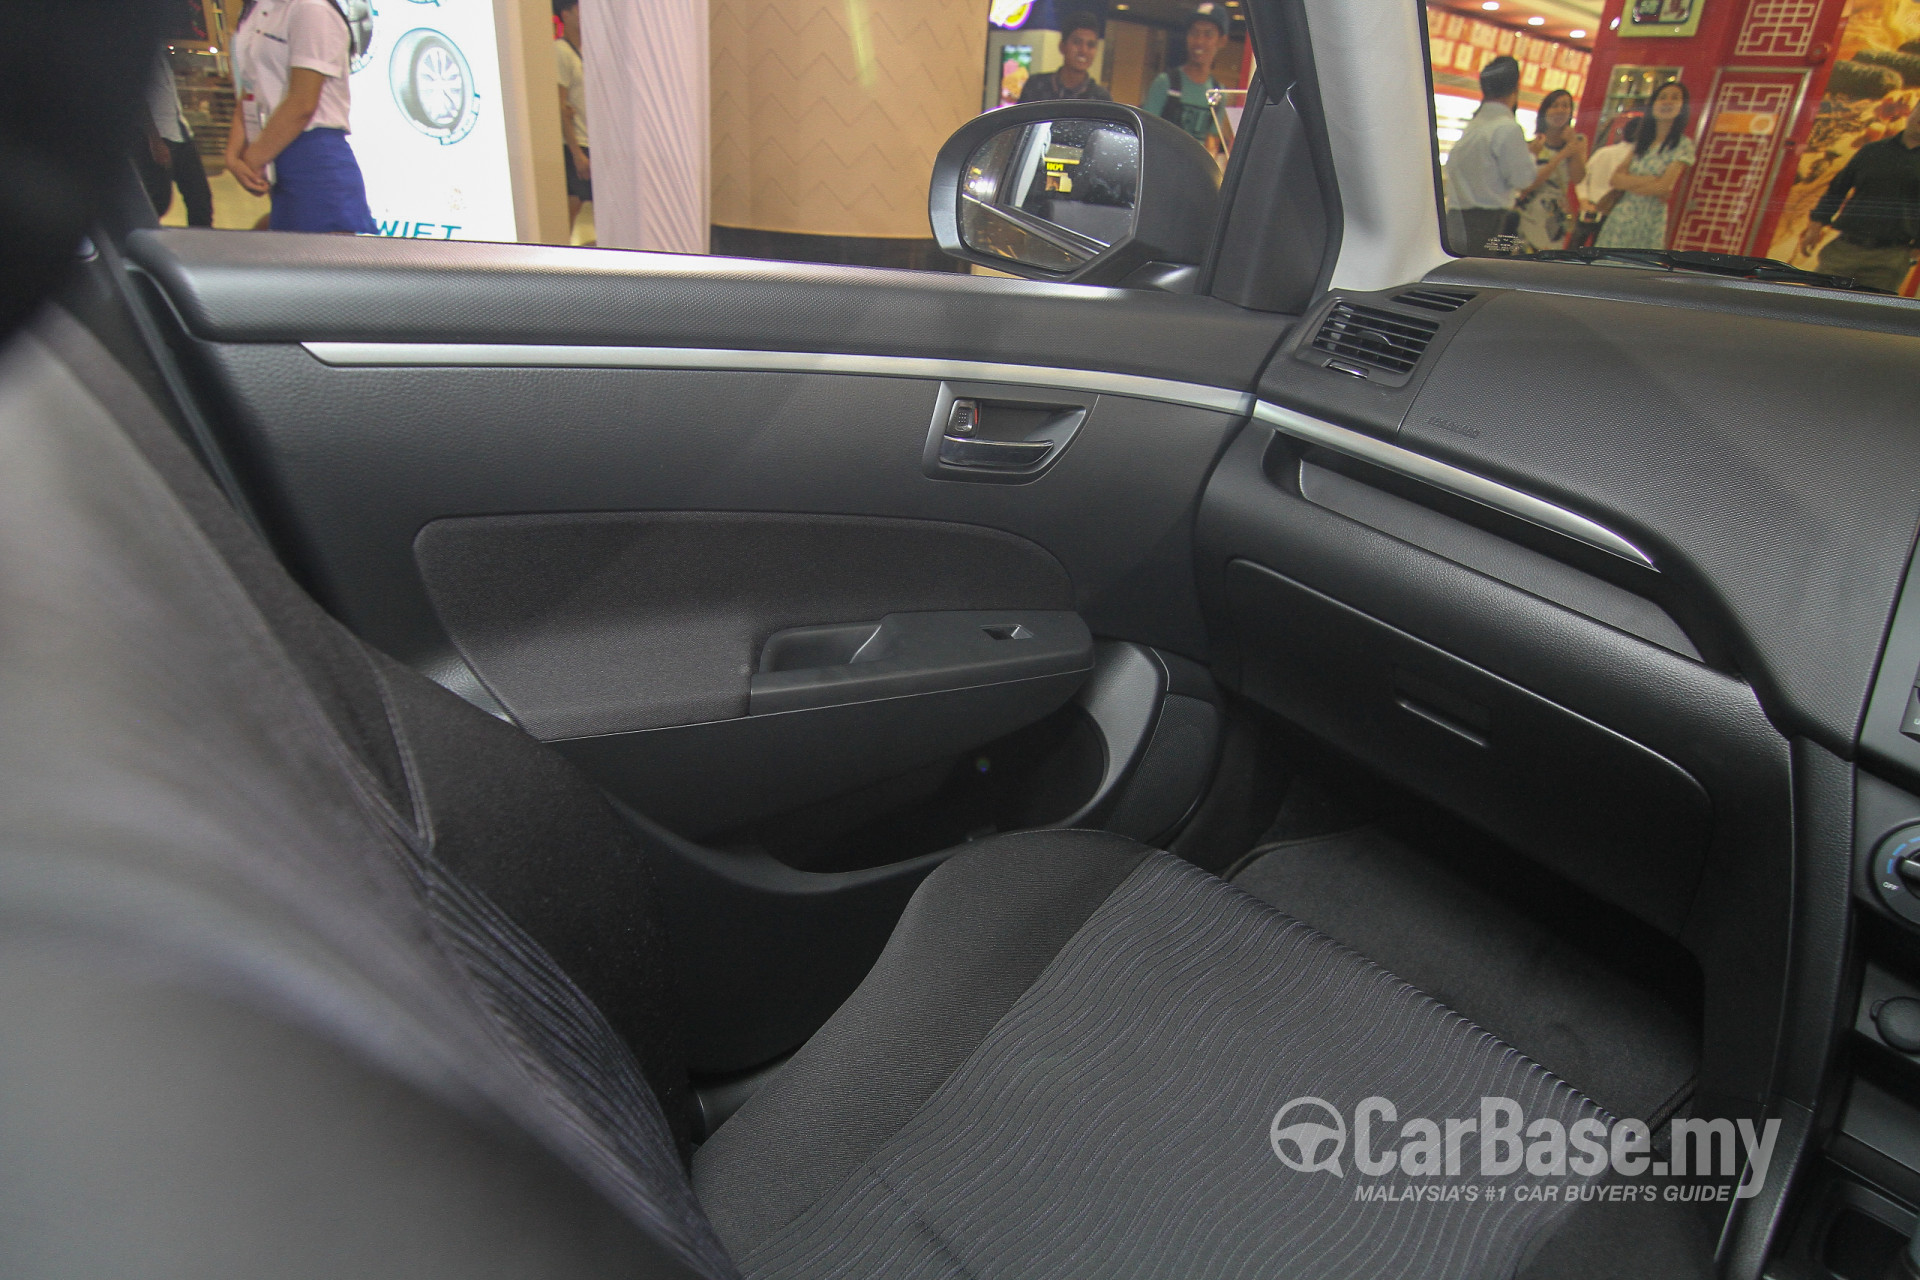 Suzuki Swift Mk3 Facelift (2015) Interior Image #24364 in